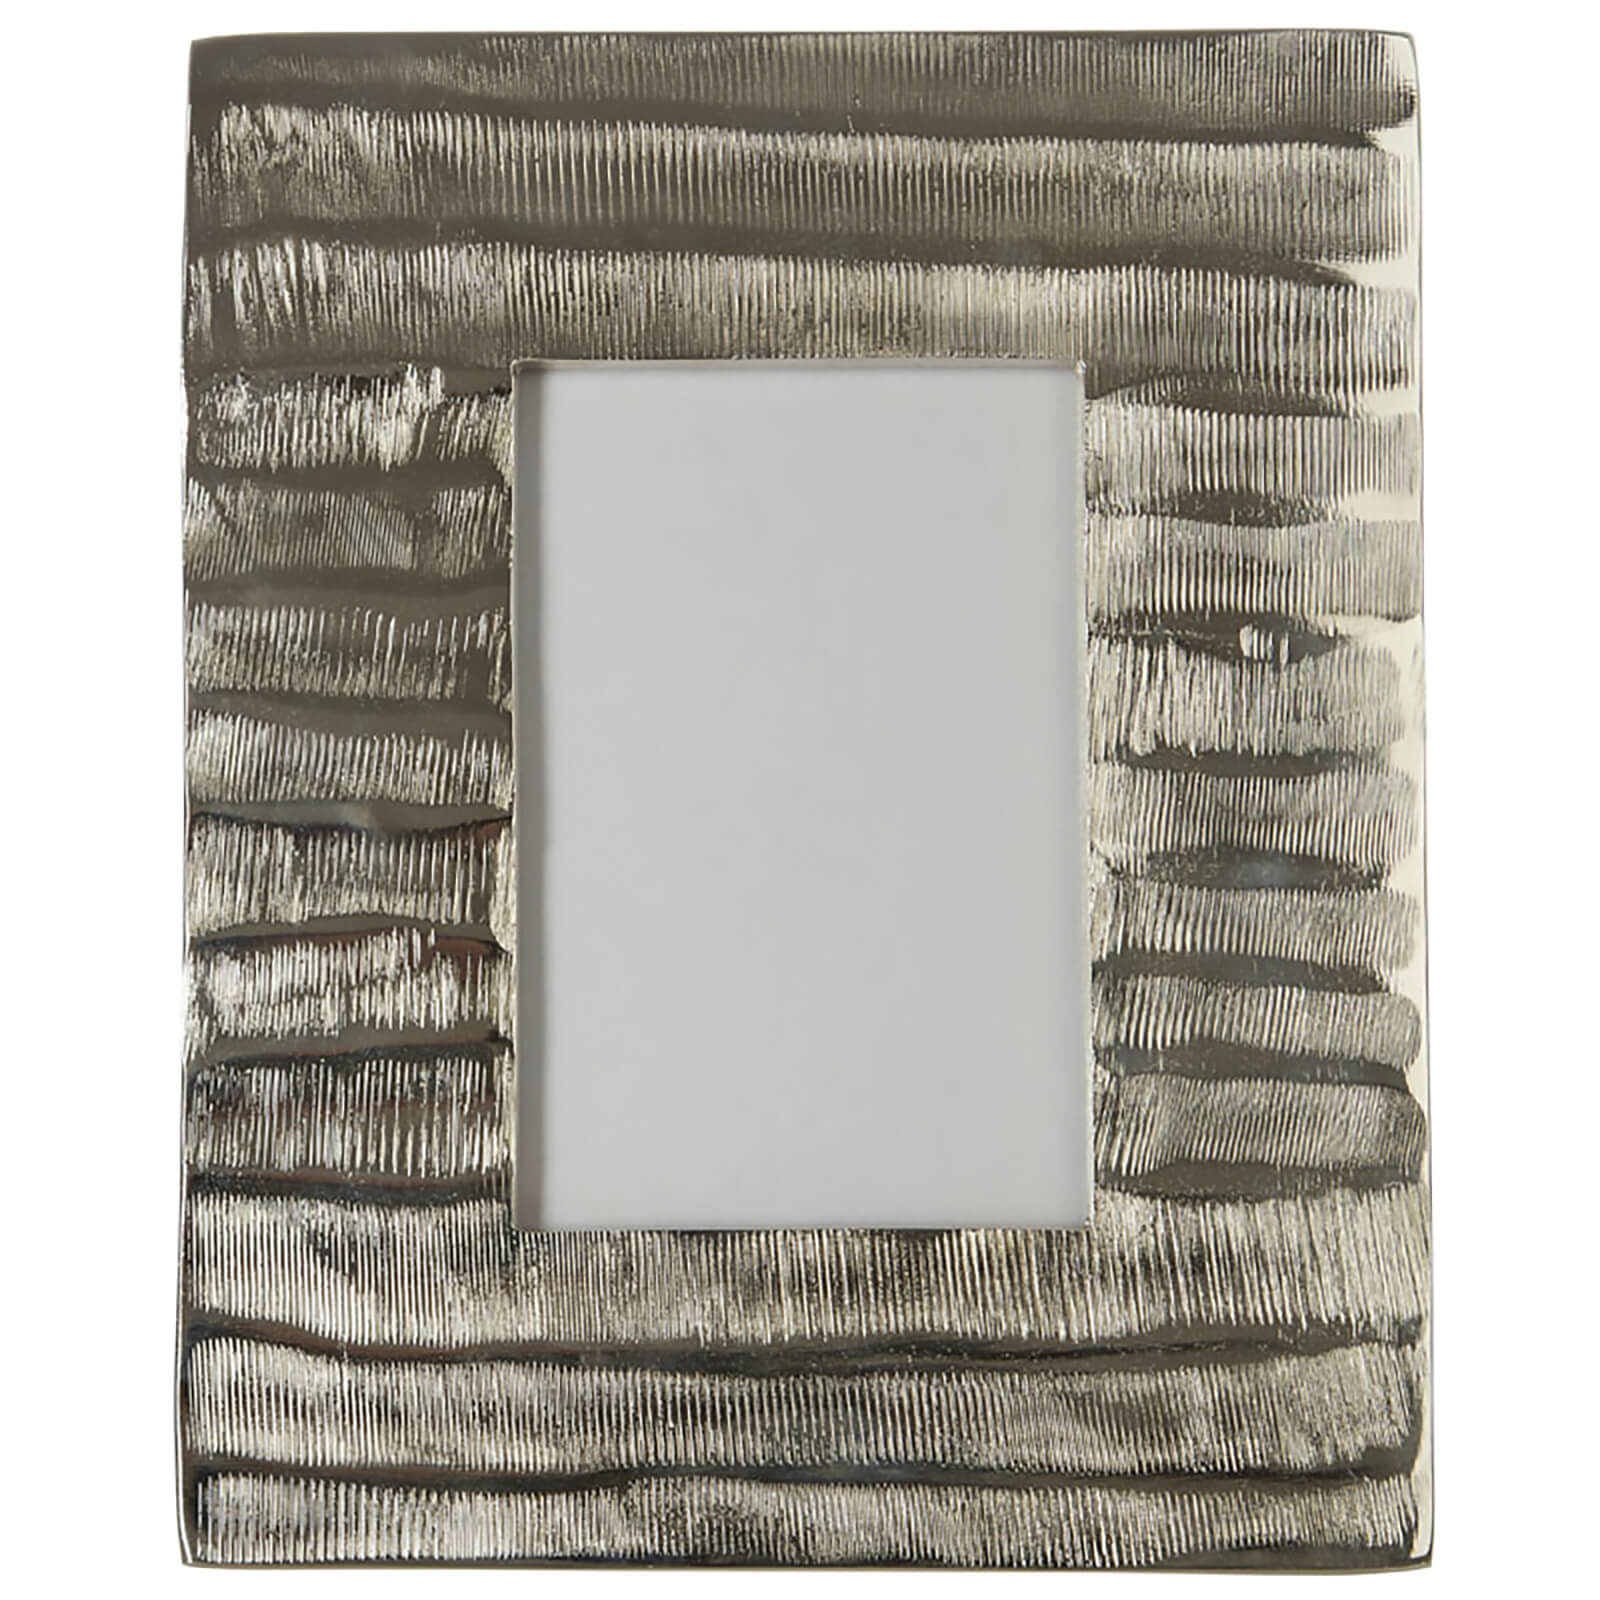 "Fifty Five South Kensington Townhouse Photo Frame - Grind Nickel Finish 4"" x 6"""